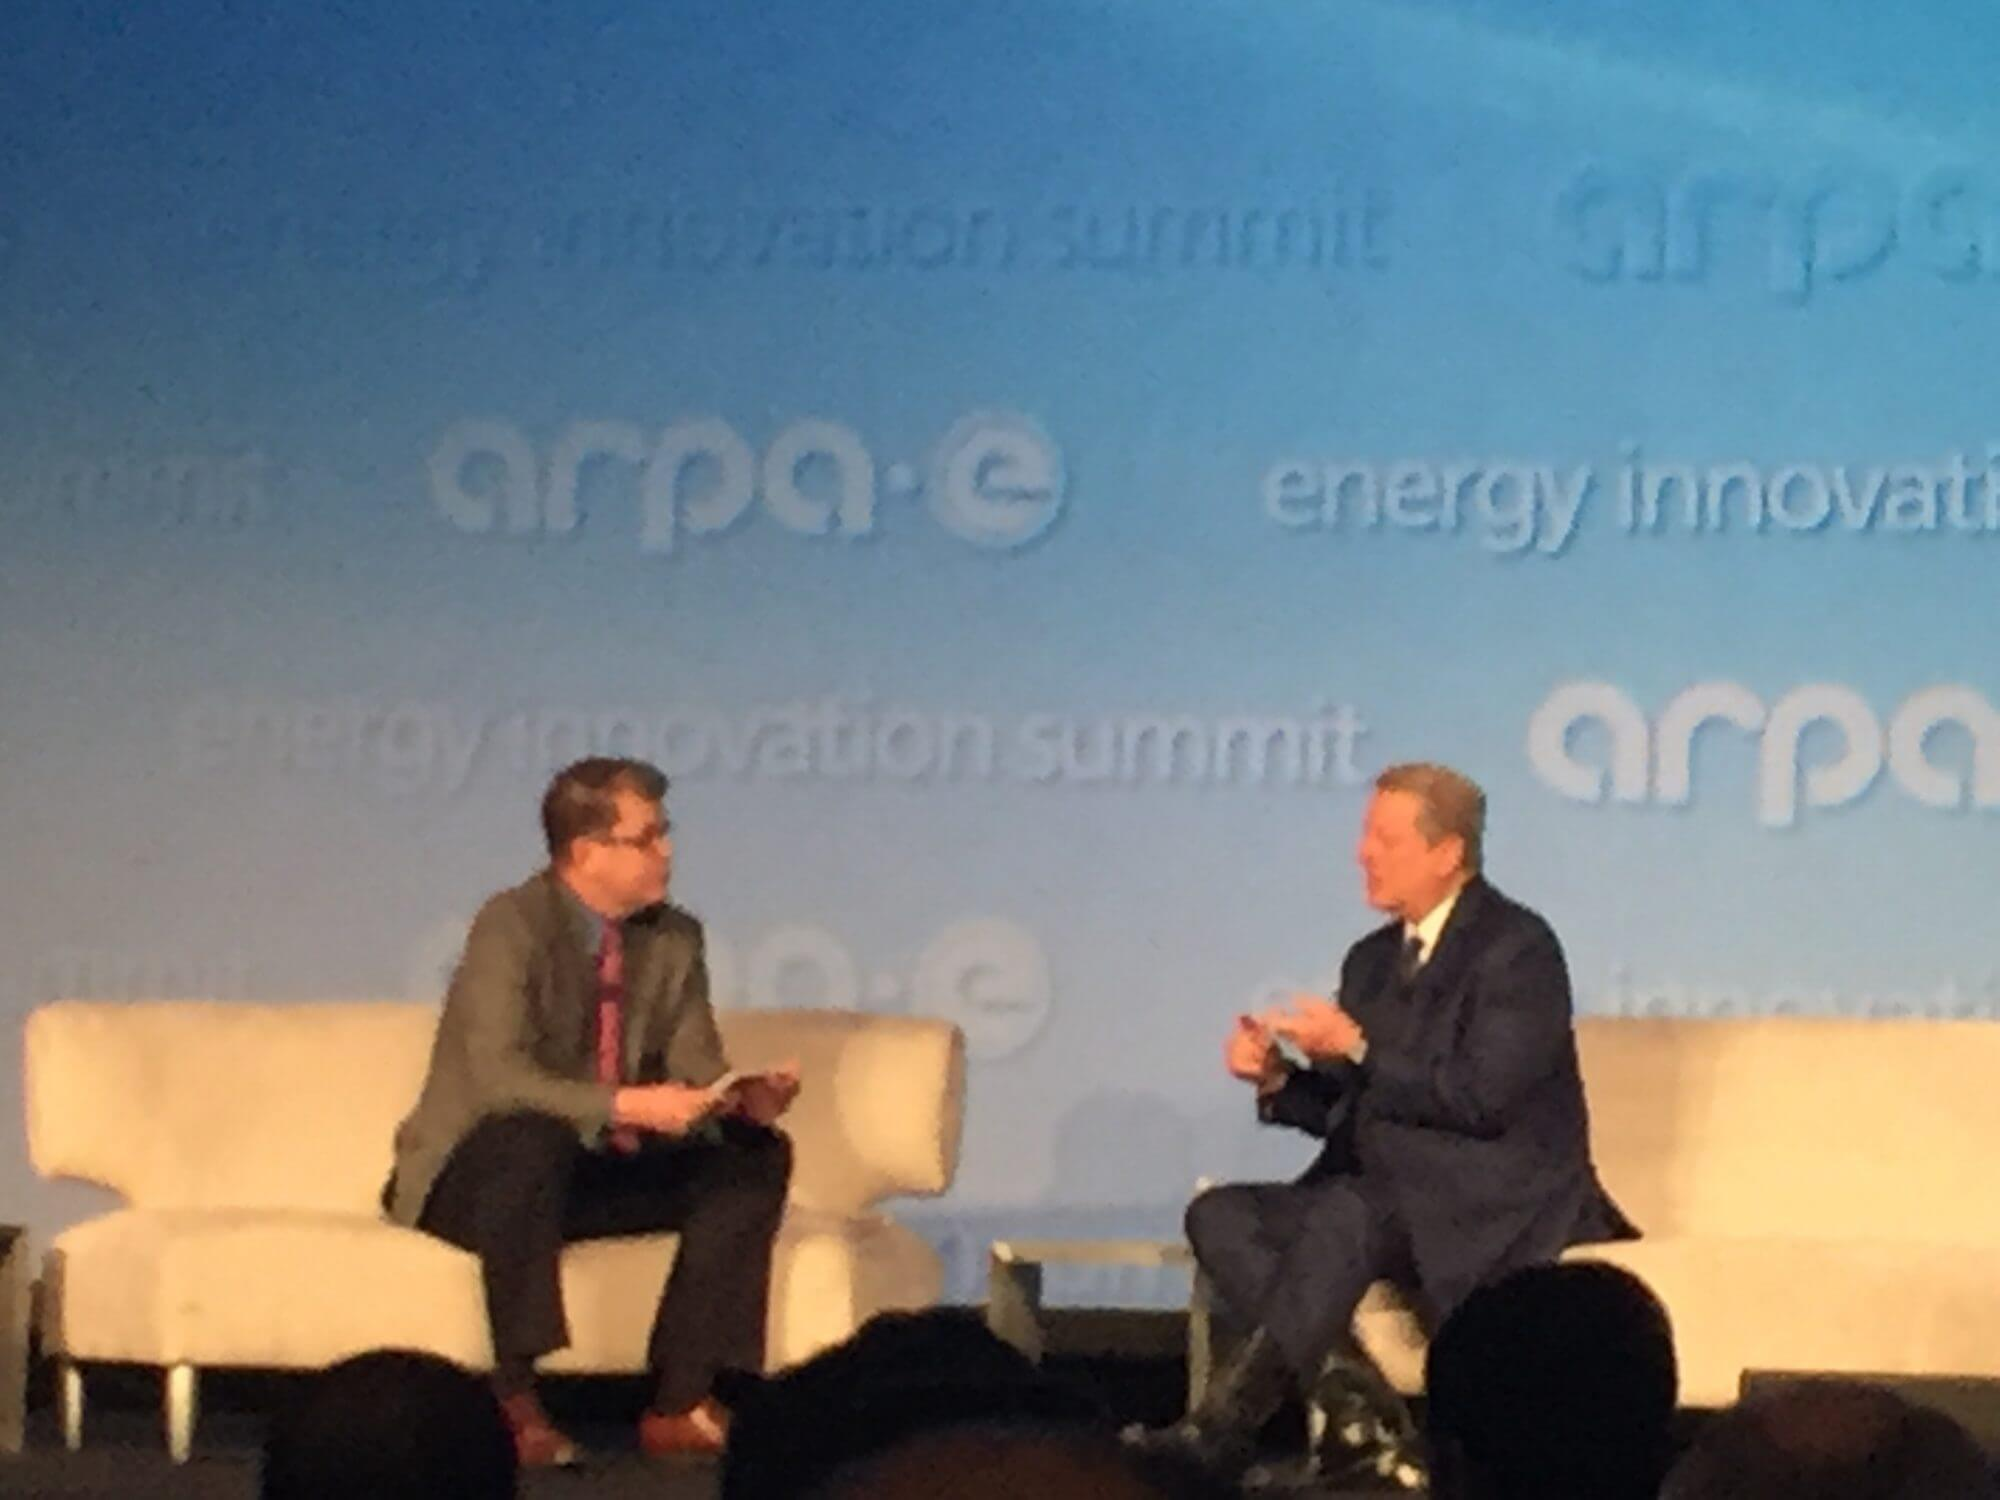 Former Vice President Al Gore says companies need to be greener